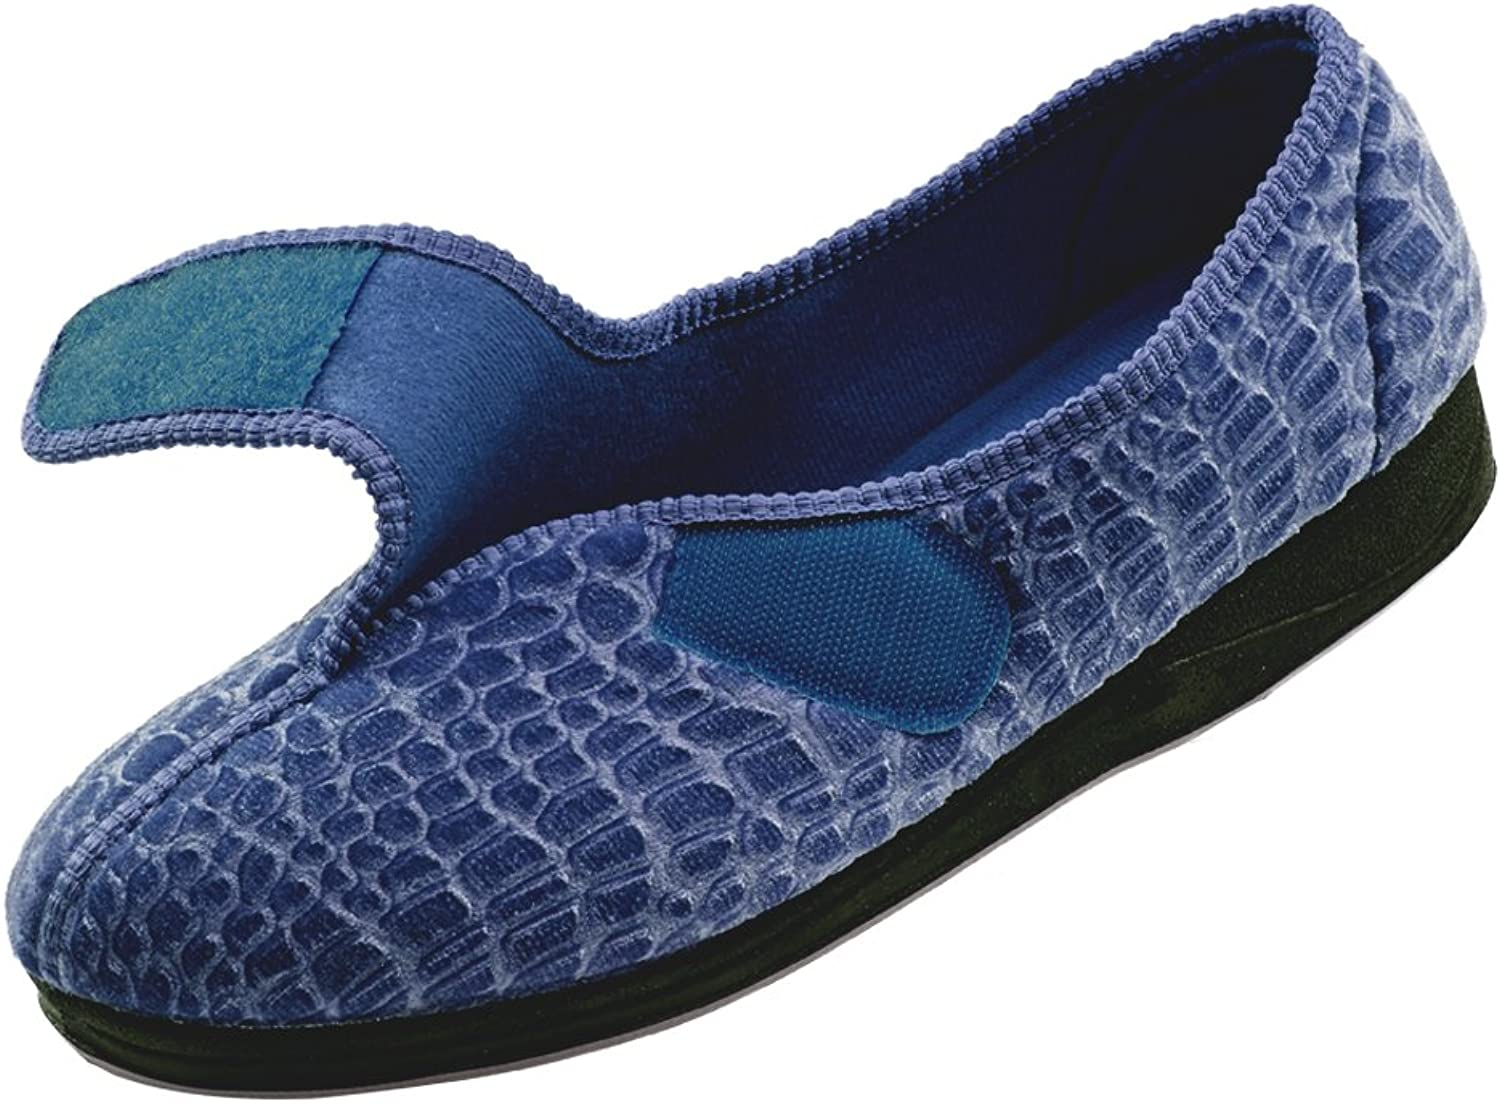 Silgreens Disabled Elderly Needs Womens Comfort Slippers - Wide - Womens House Slippers with